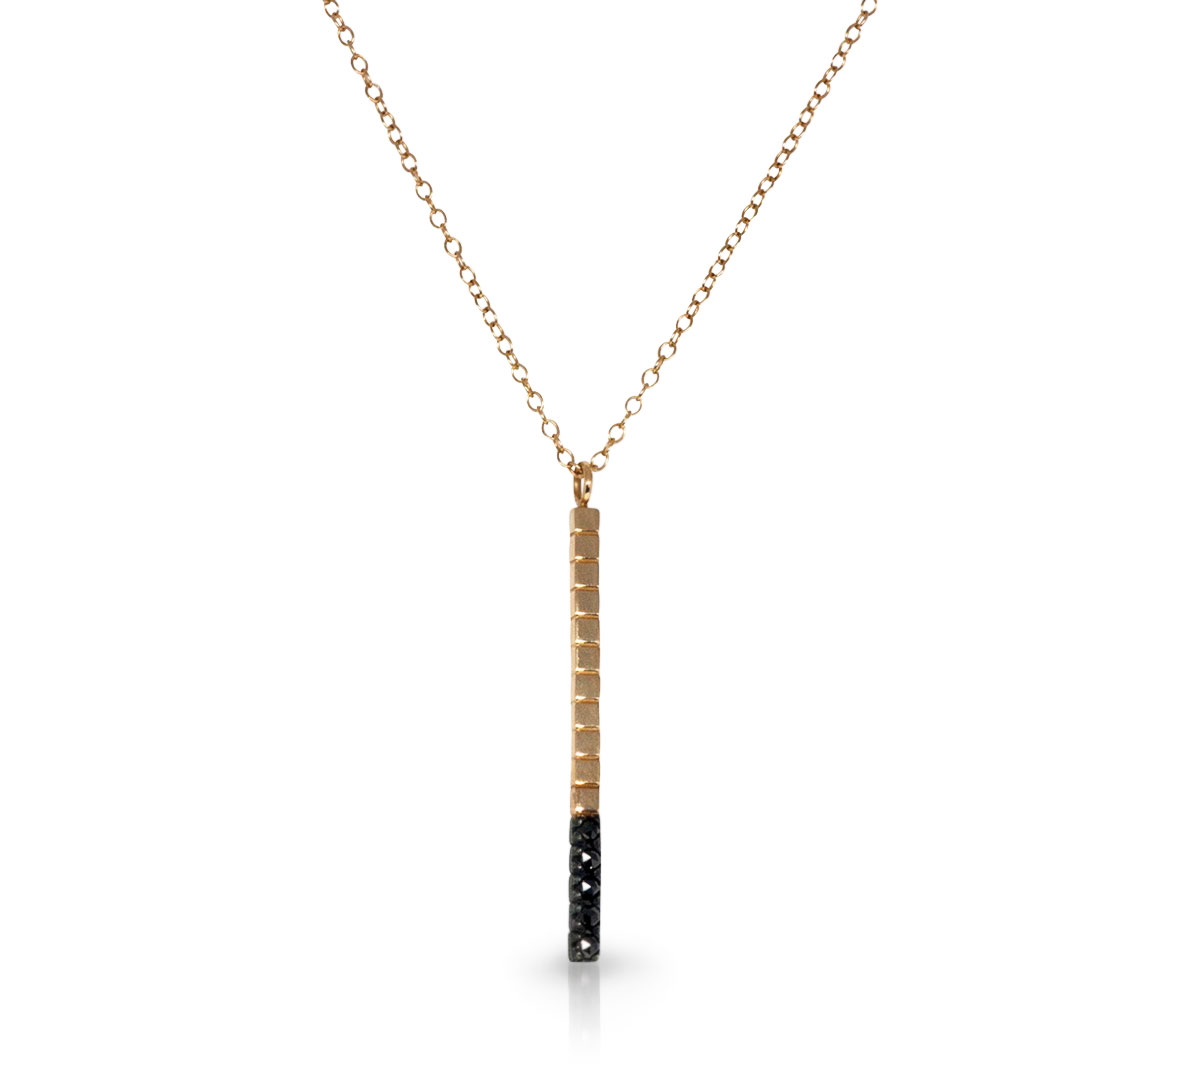 Imperfect Grace 14K yellow gold and oxidized sterling silver bar necklace